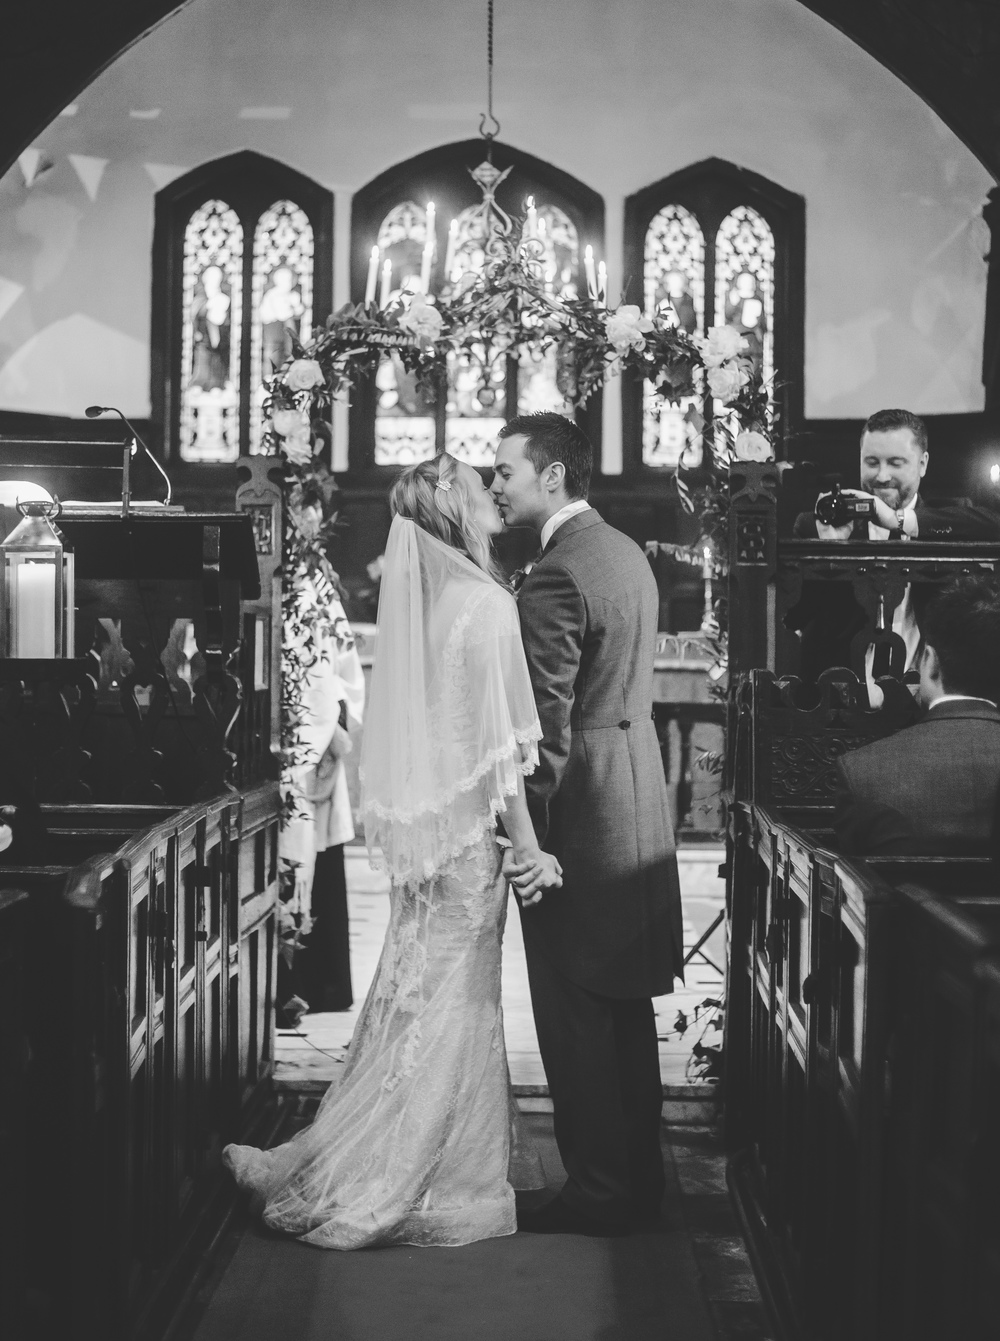 The first kiss for the bride and groom. - Wedding photographer Cheshire